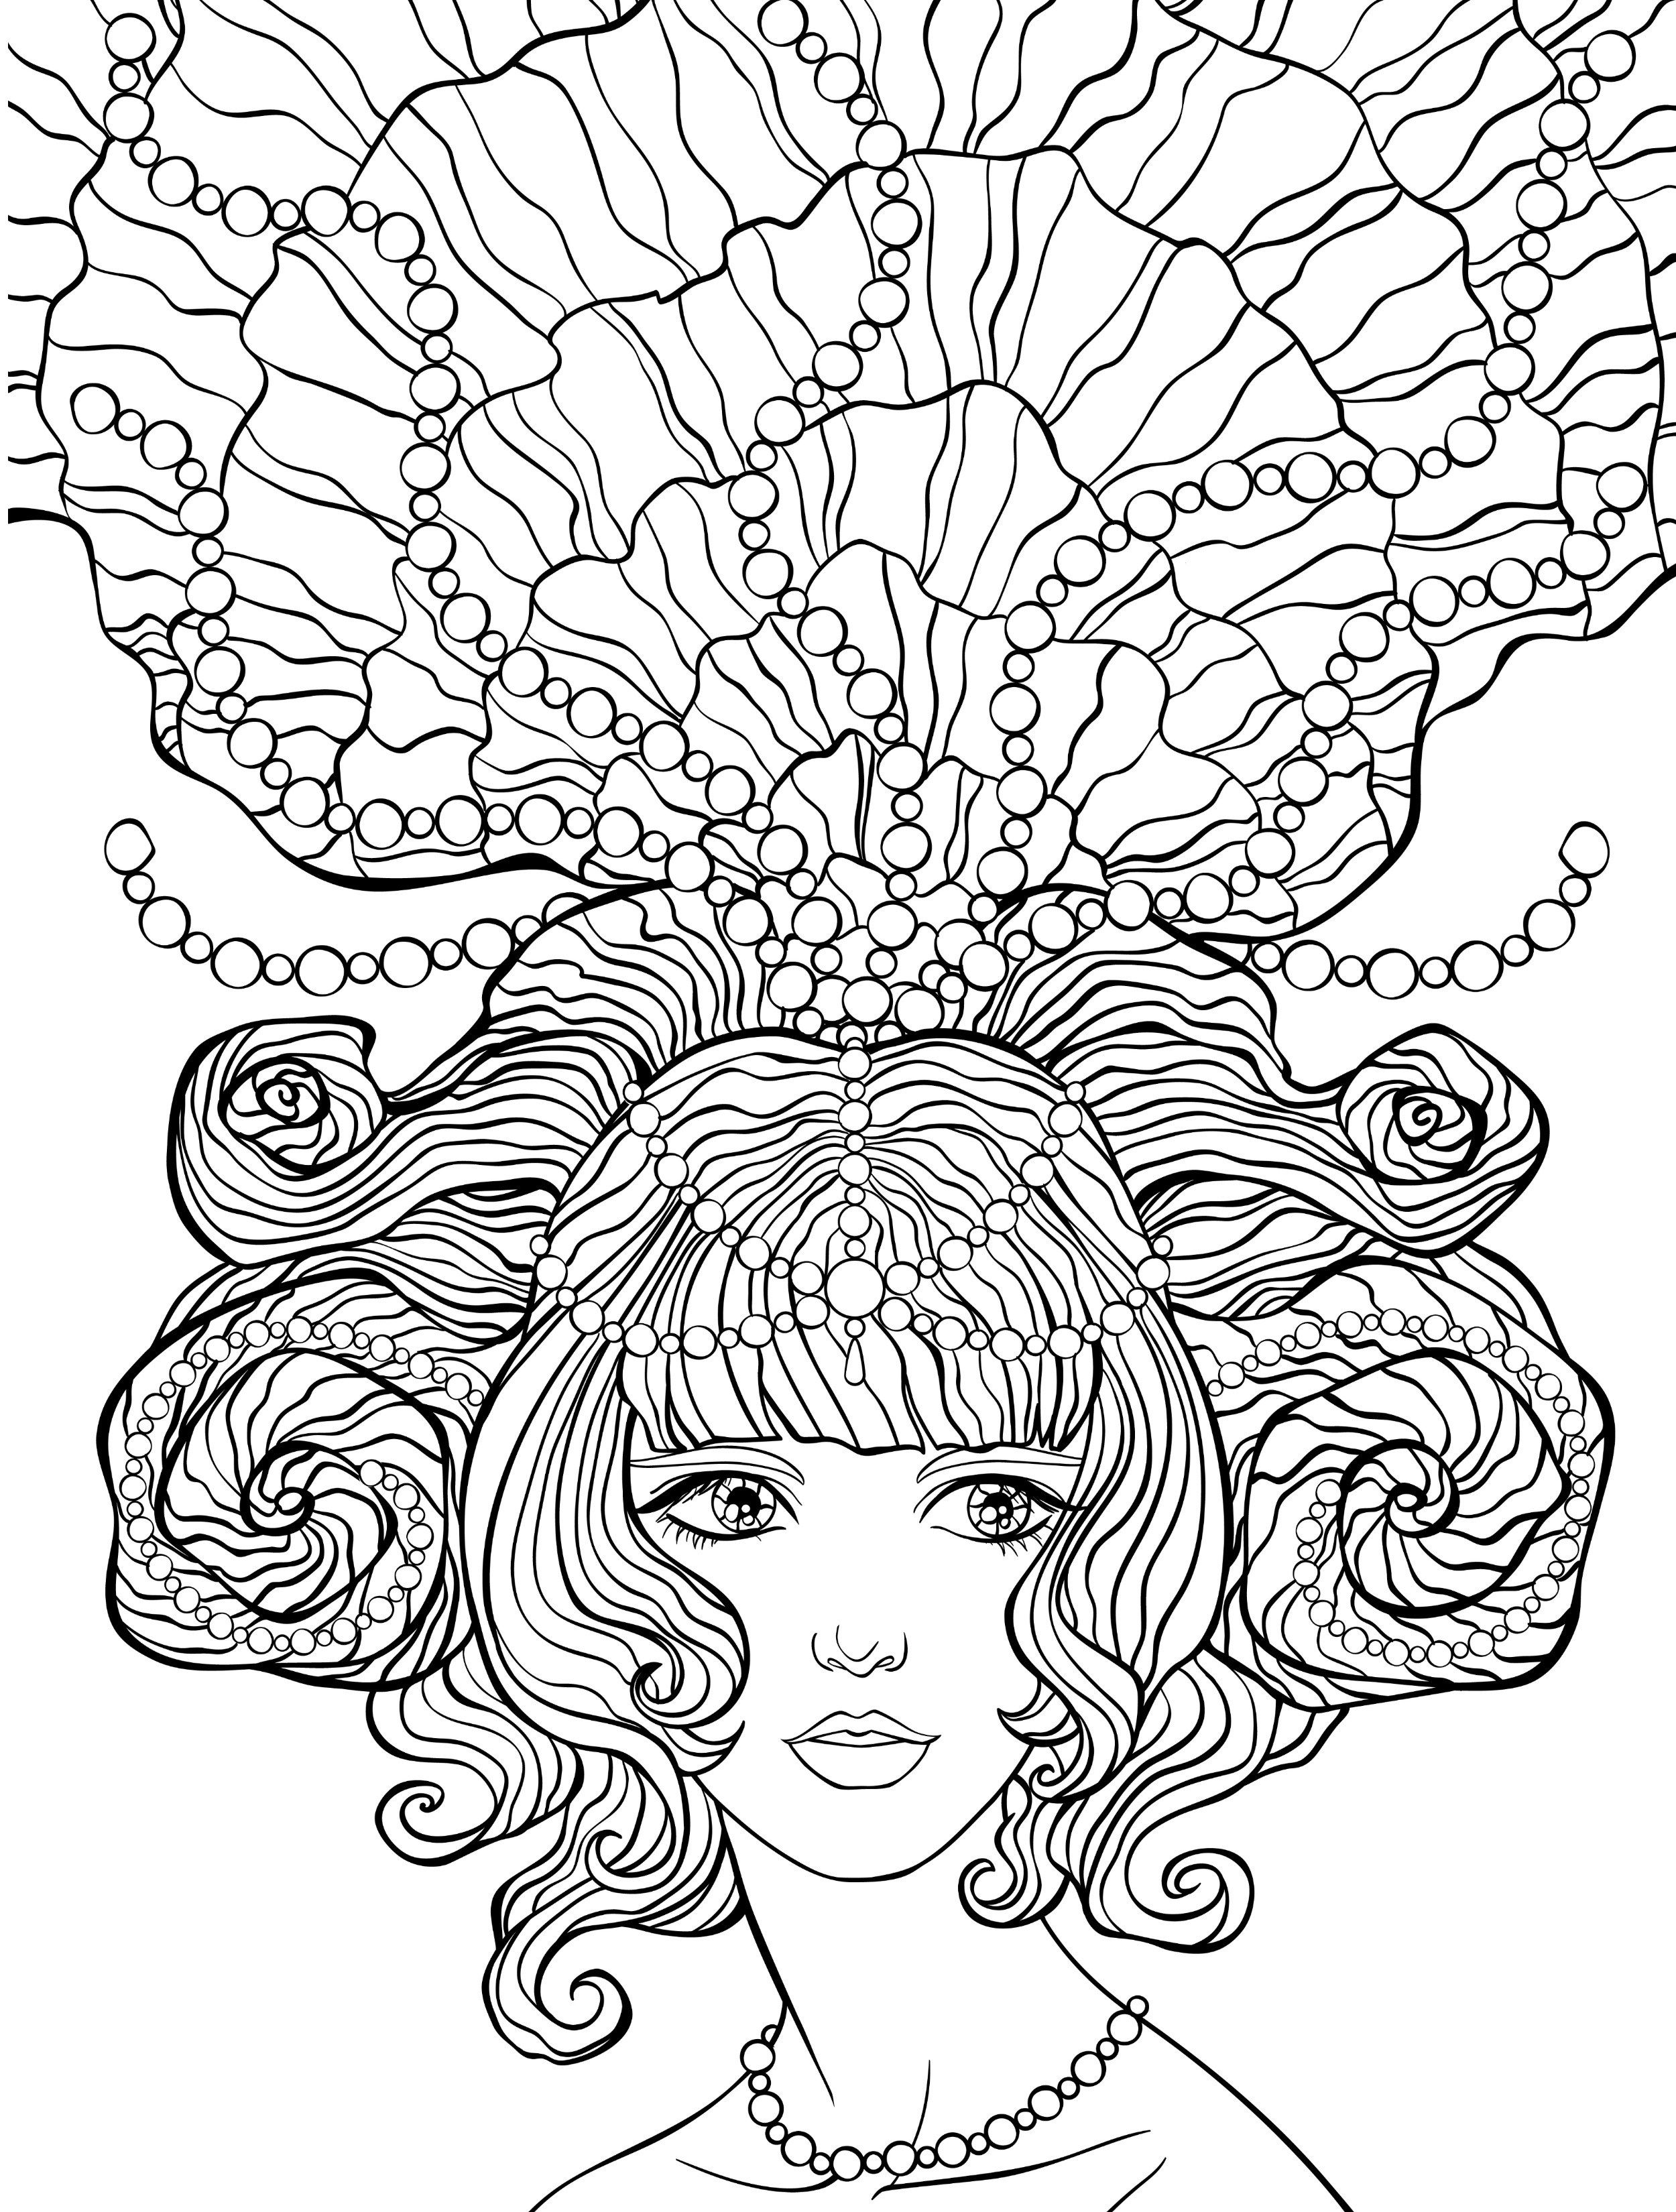 10 crazy hair adult coloring pages coloring pages pinterest